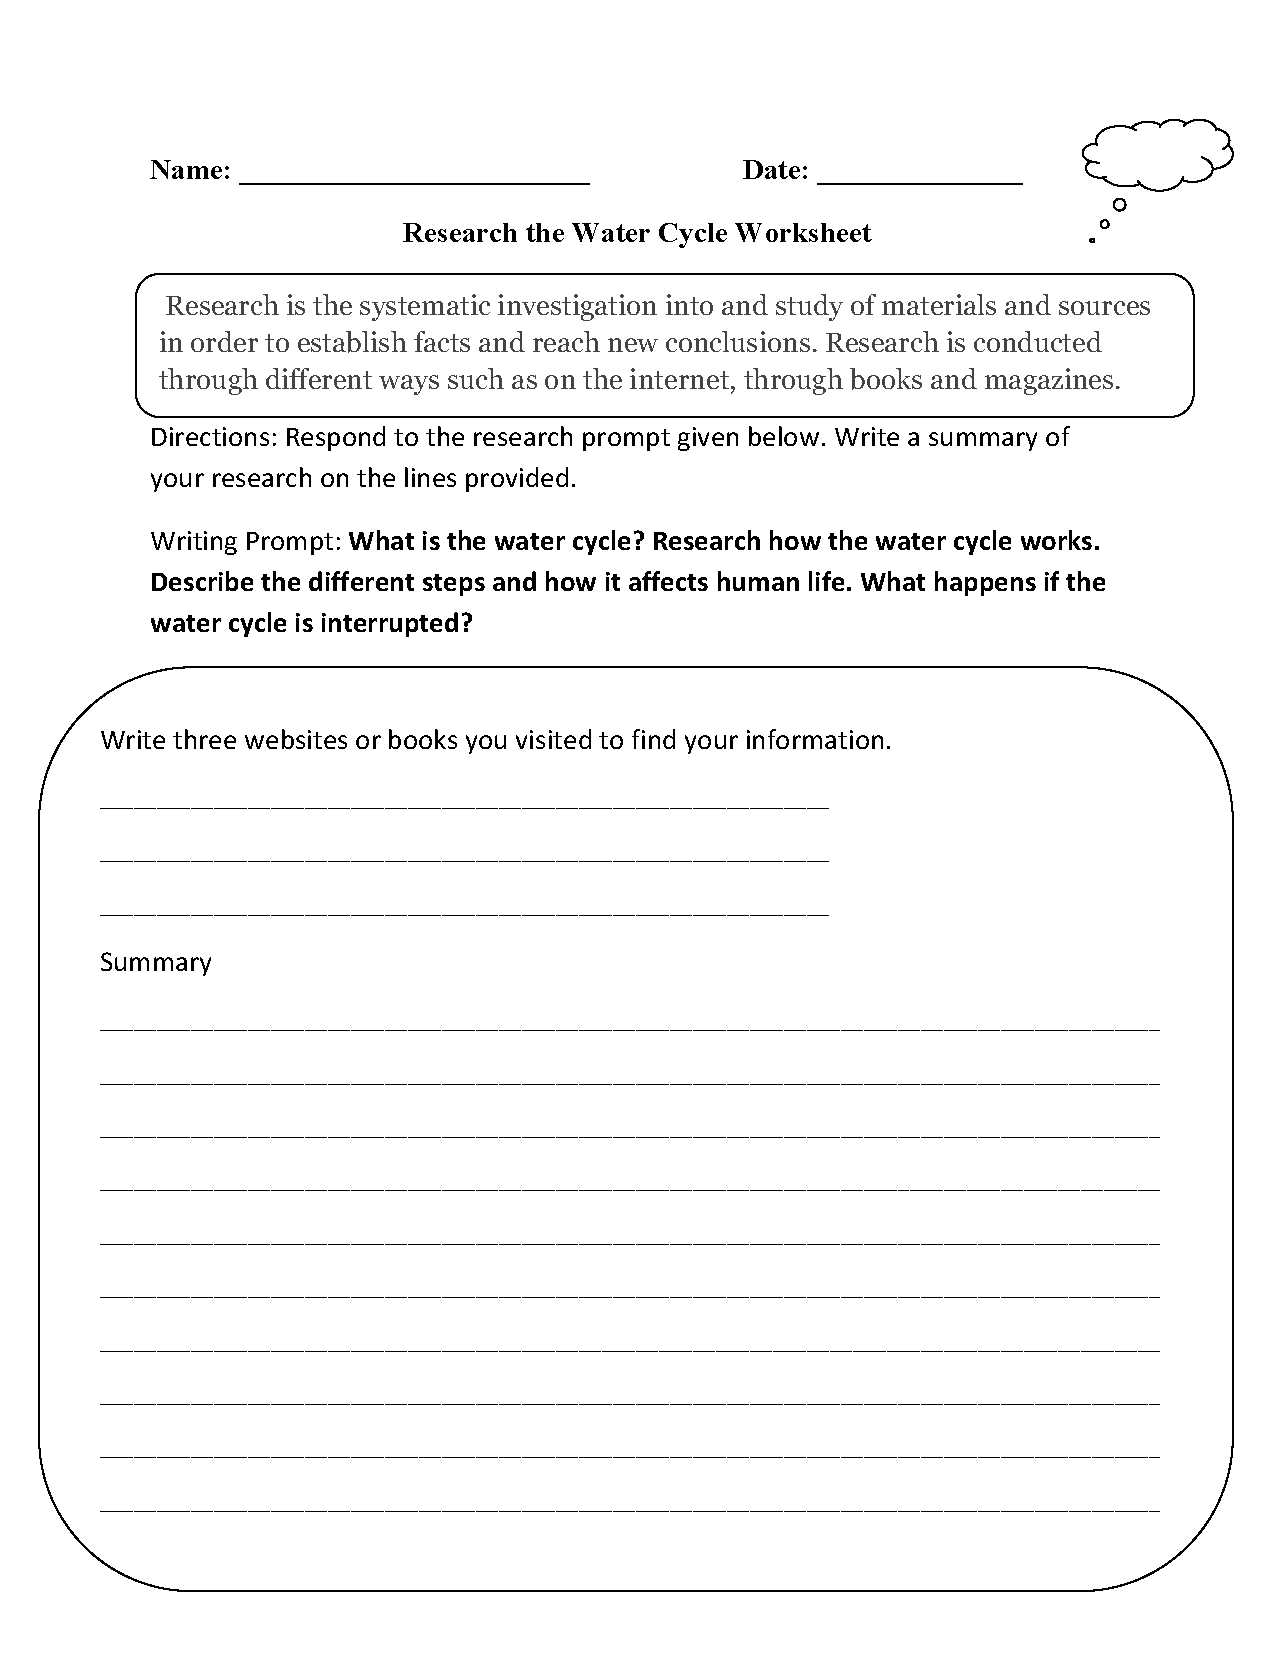 water cycle for kindergarten worksheets water cycle review worksheet answers worksheetswater. Black Bedroom Furniture Sets. Home Design Ideas